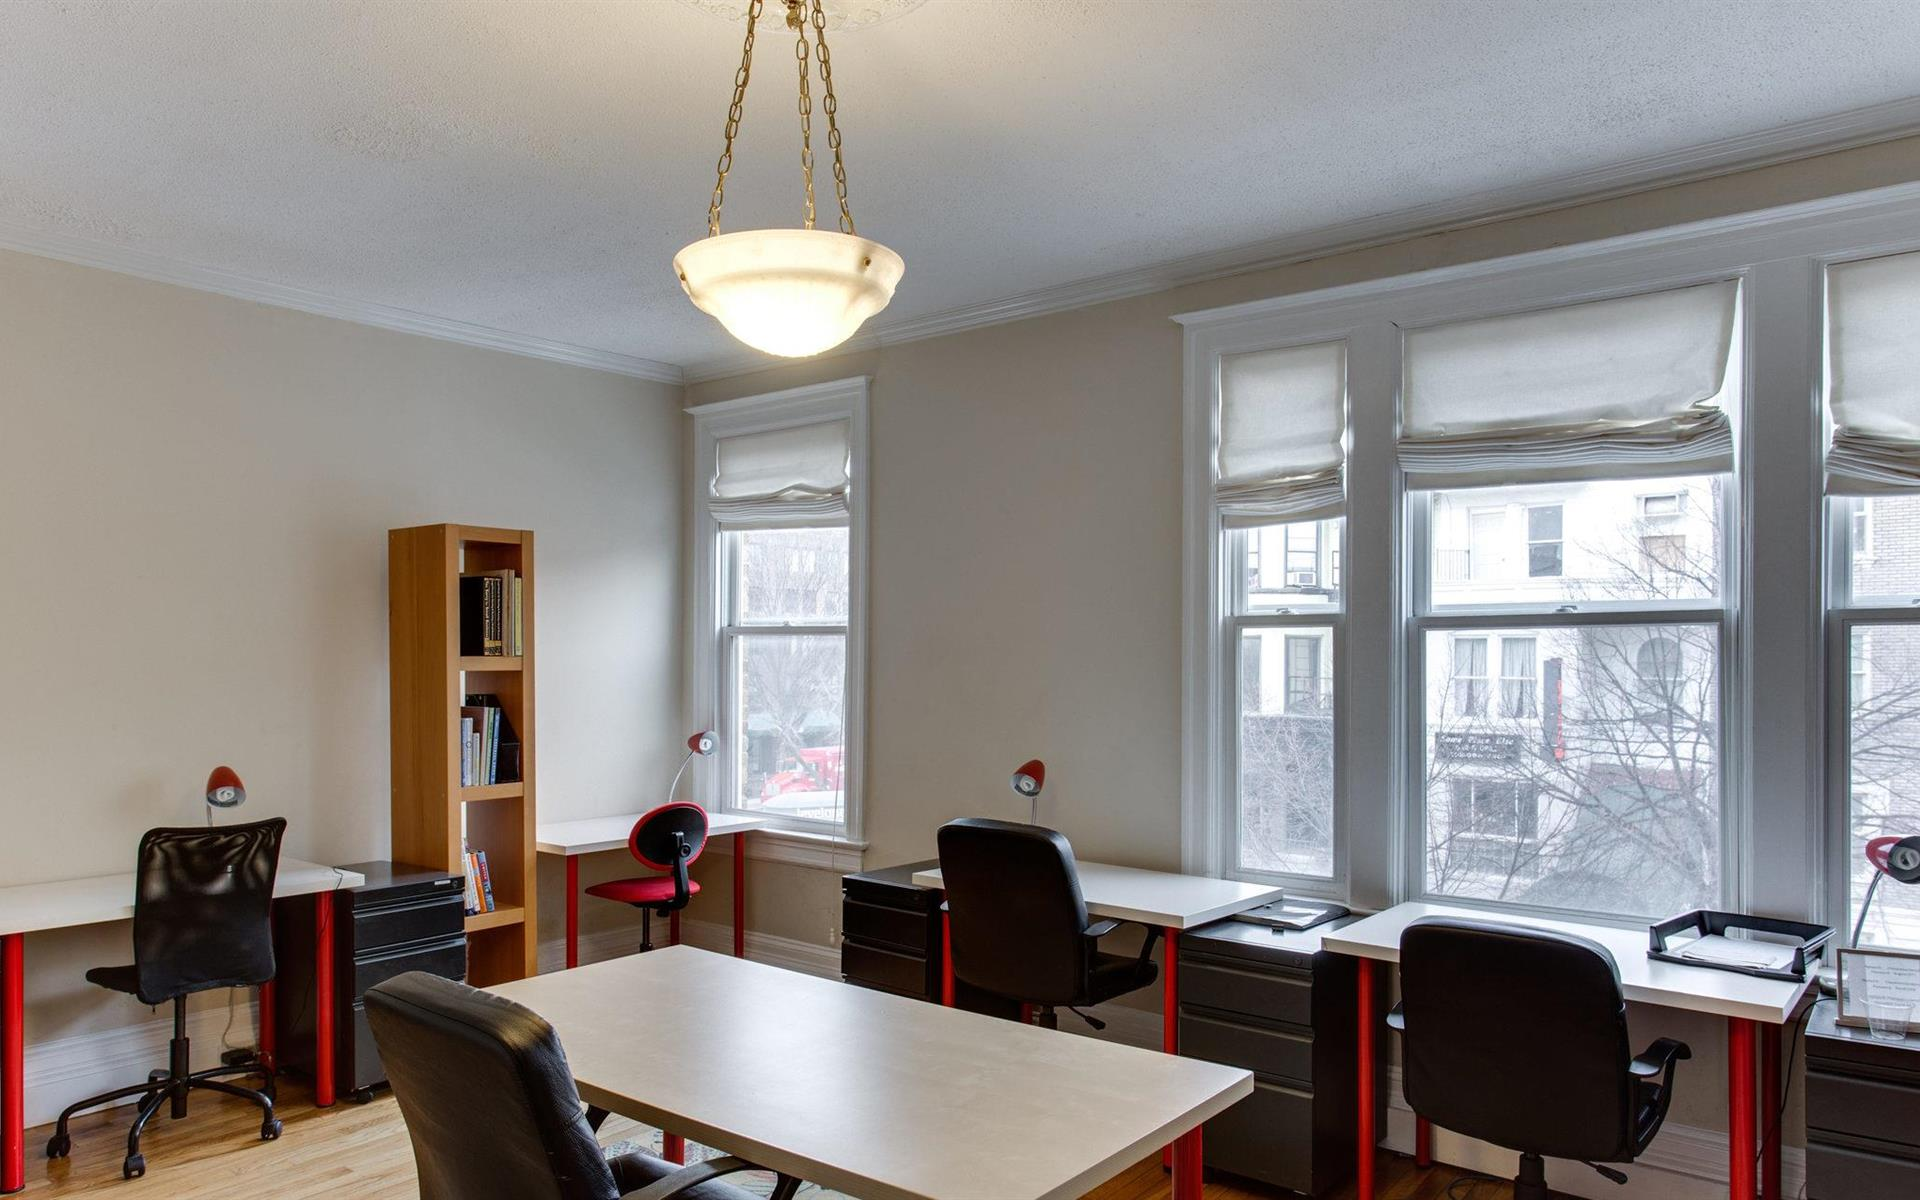 Dupont Circle Business Incubator (DCBI) - DCBI: Co-Working Space